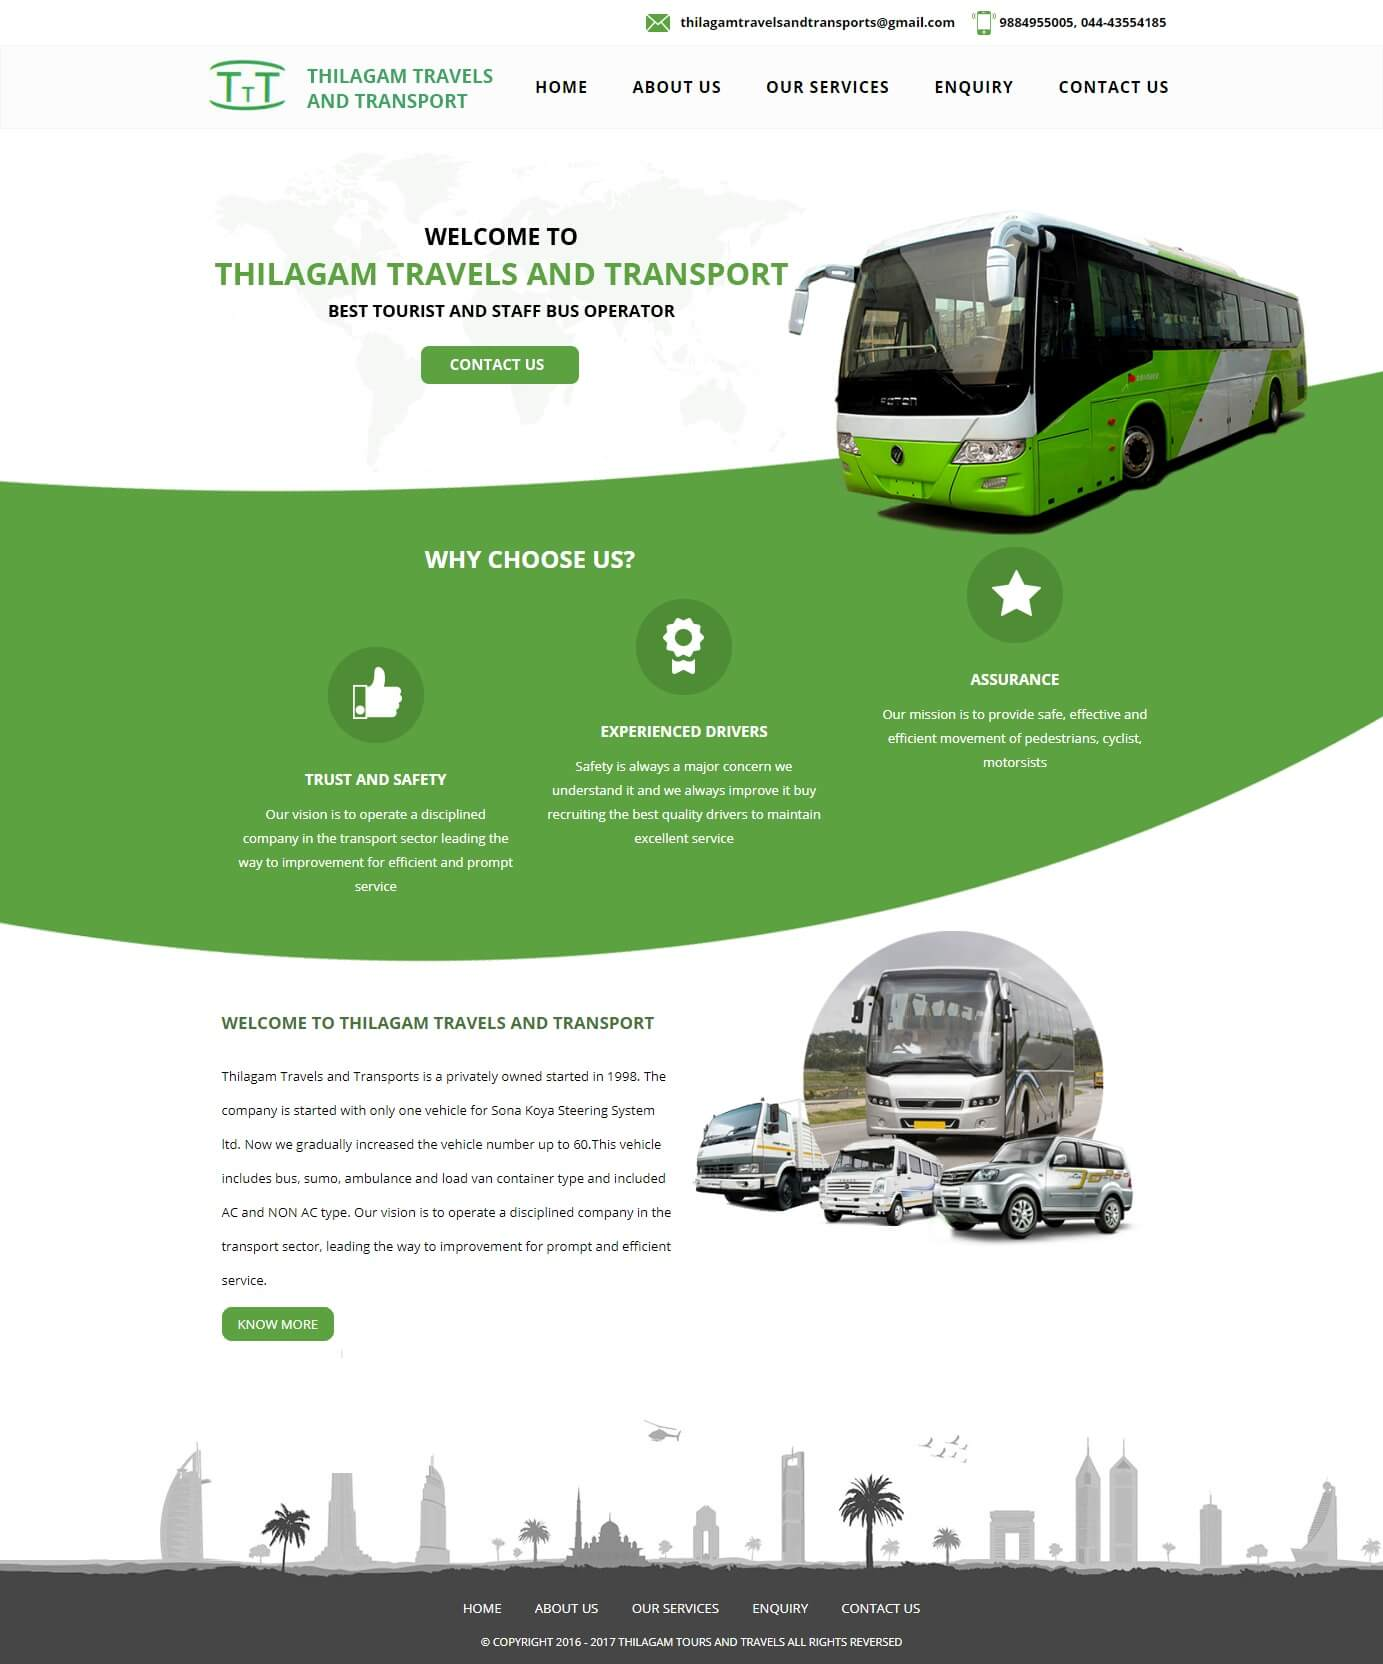 Static website for Thilagam Travels and Transports